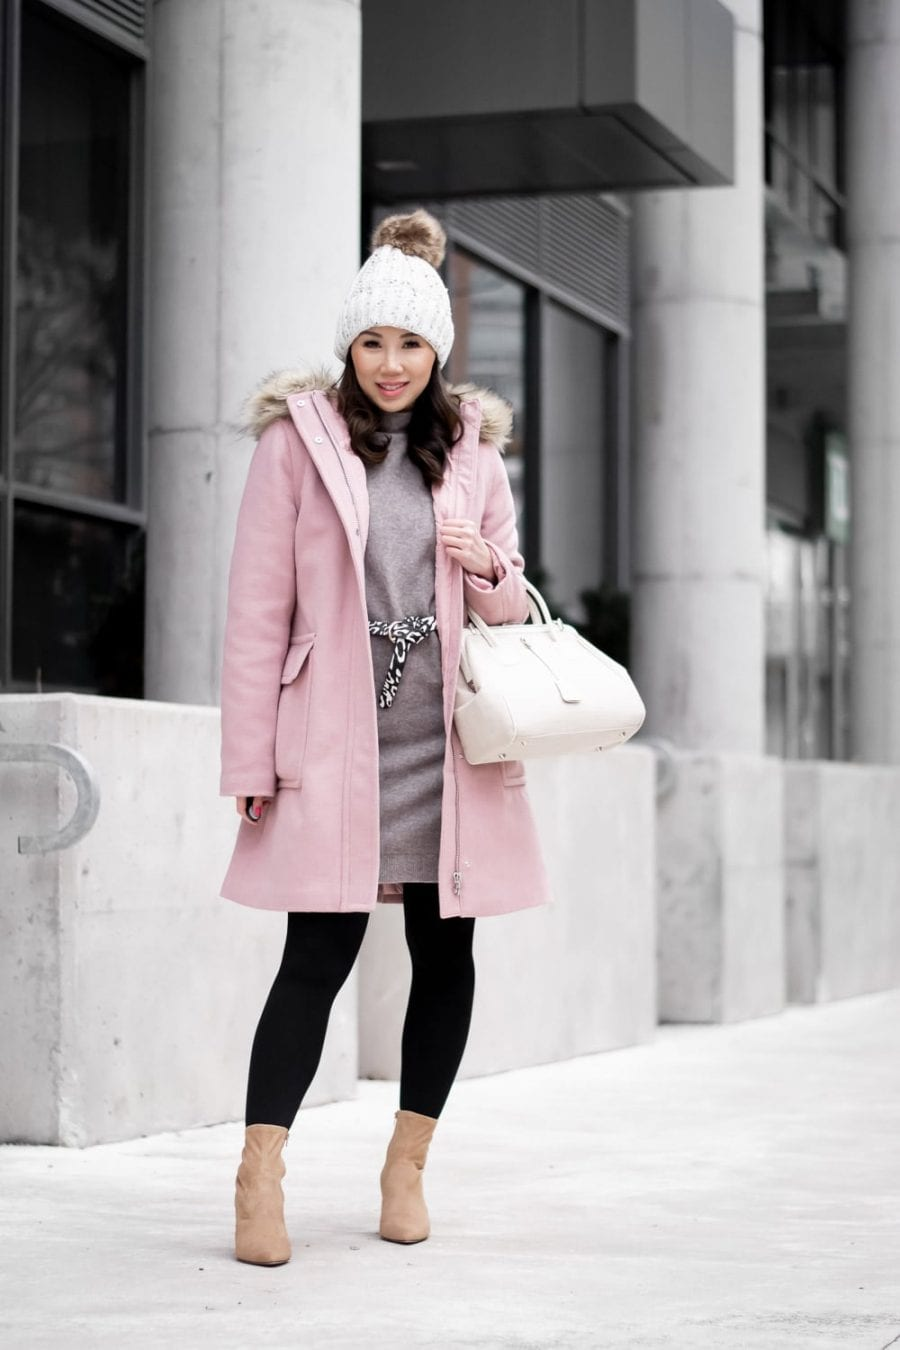 Womens Winter Coat Outfit: Pink wool parka, tan ankle boots